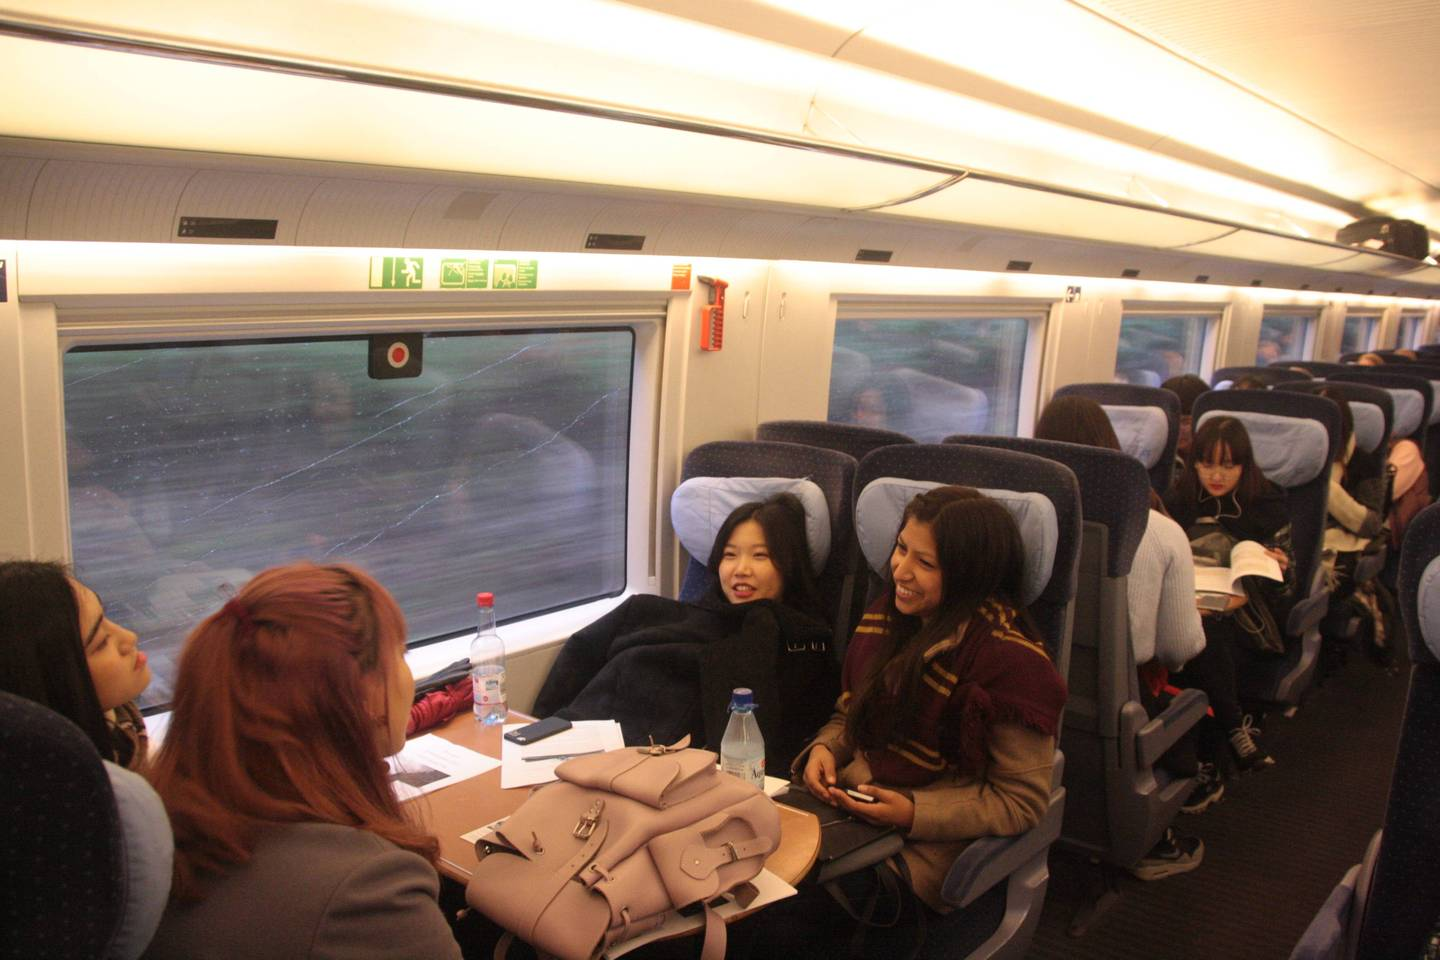 Students in the train on their way to Brussels.